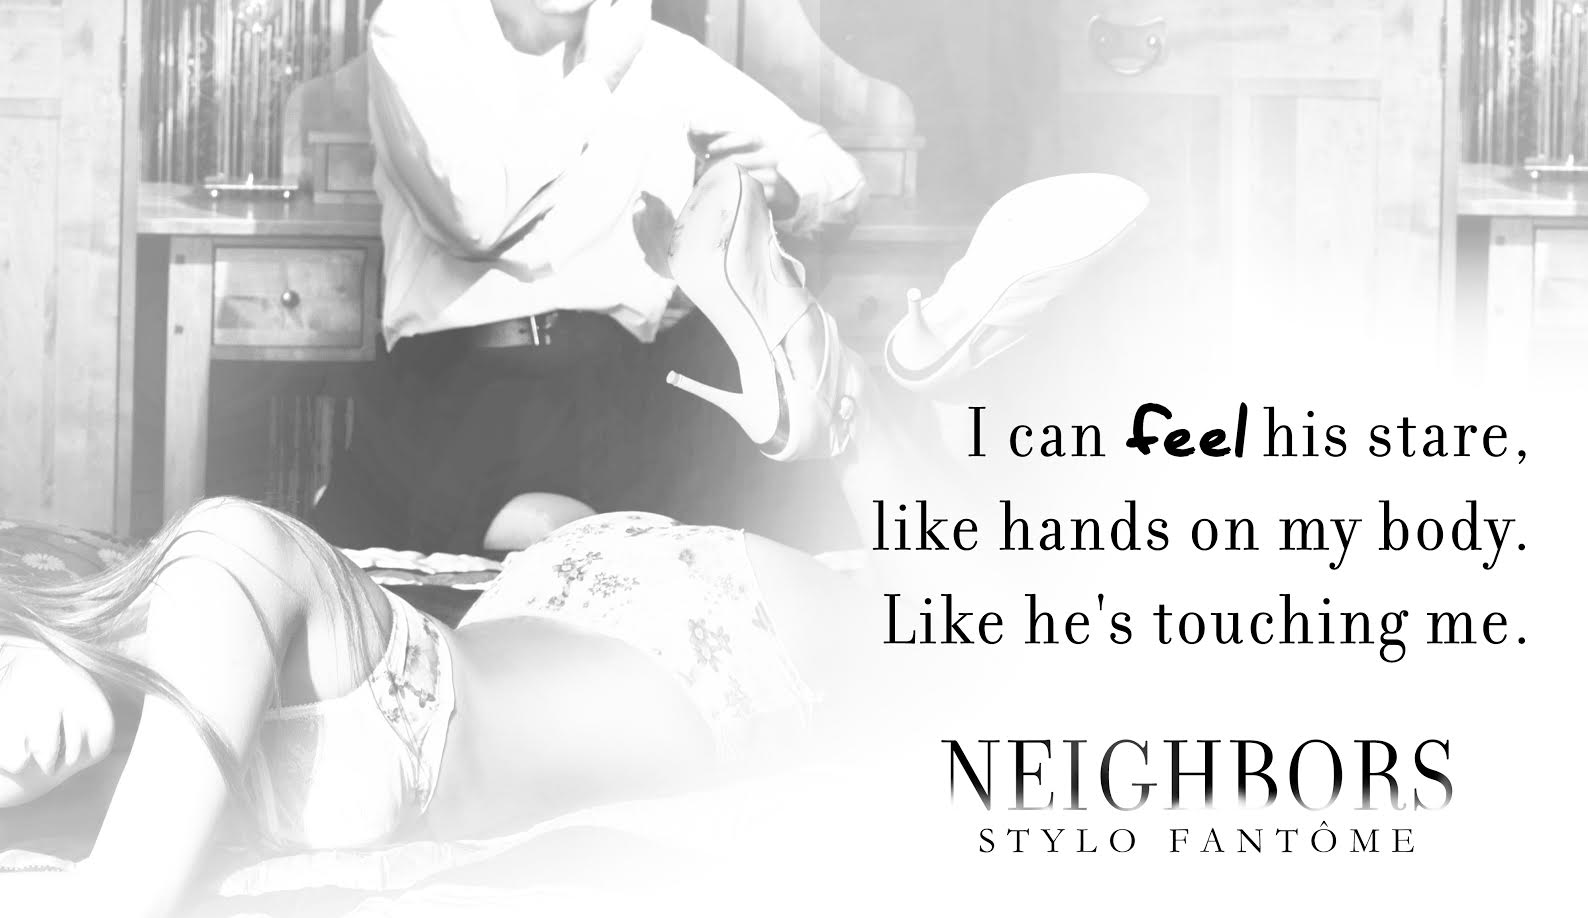 neighbors teaser excerpt.jpg